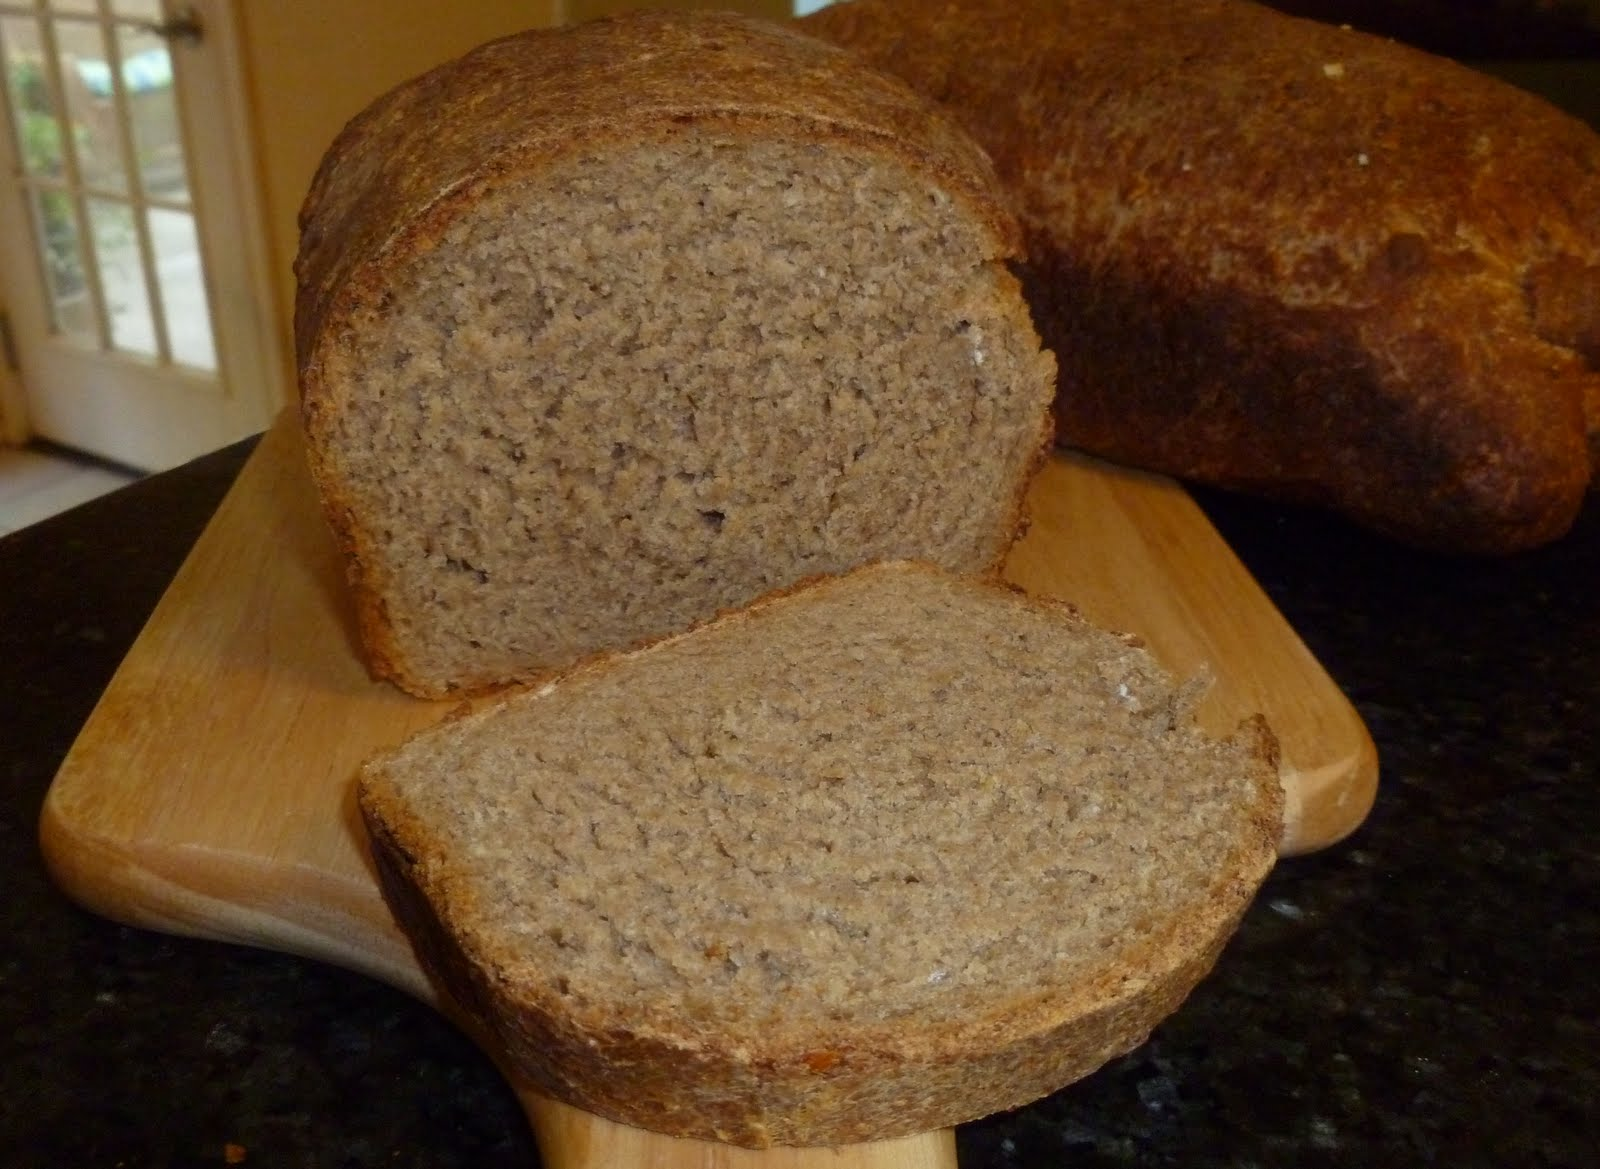 Oatmeal bread with Cinnamon, without Raisins